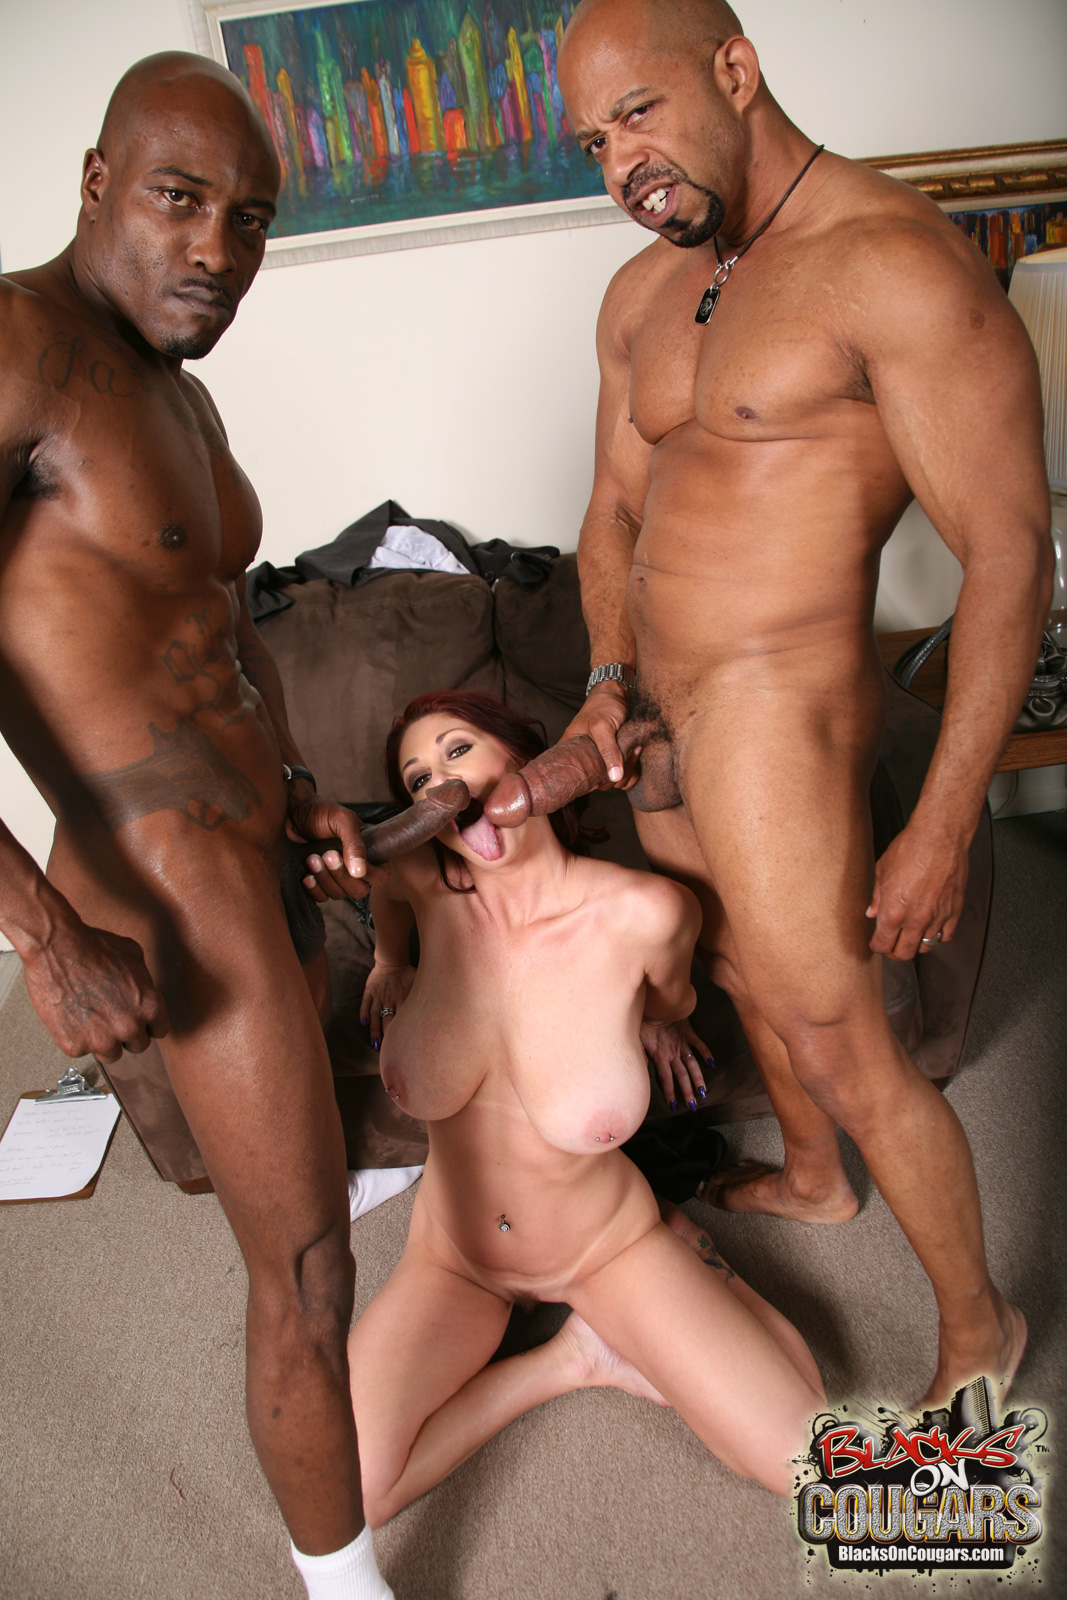 now on site | blacks on cougars official blog